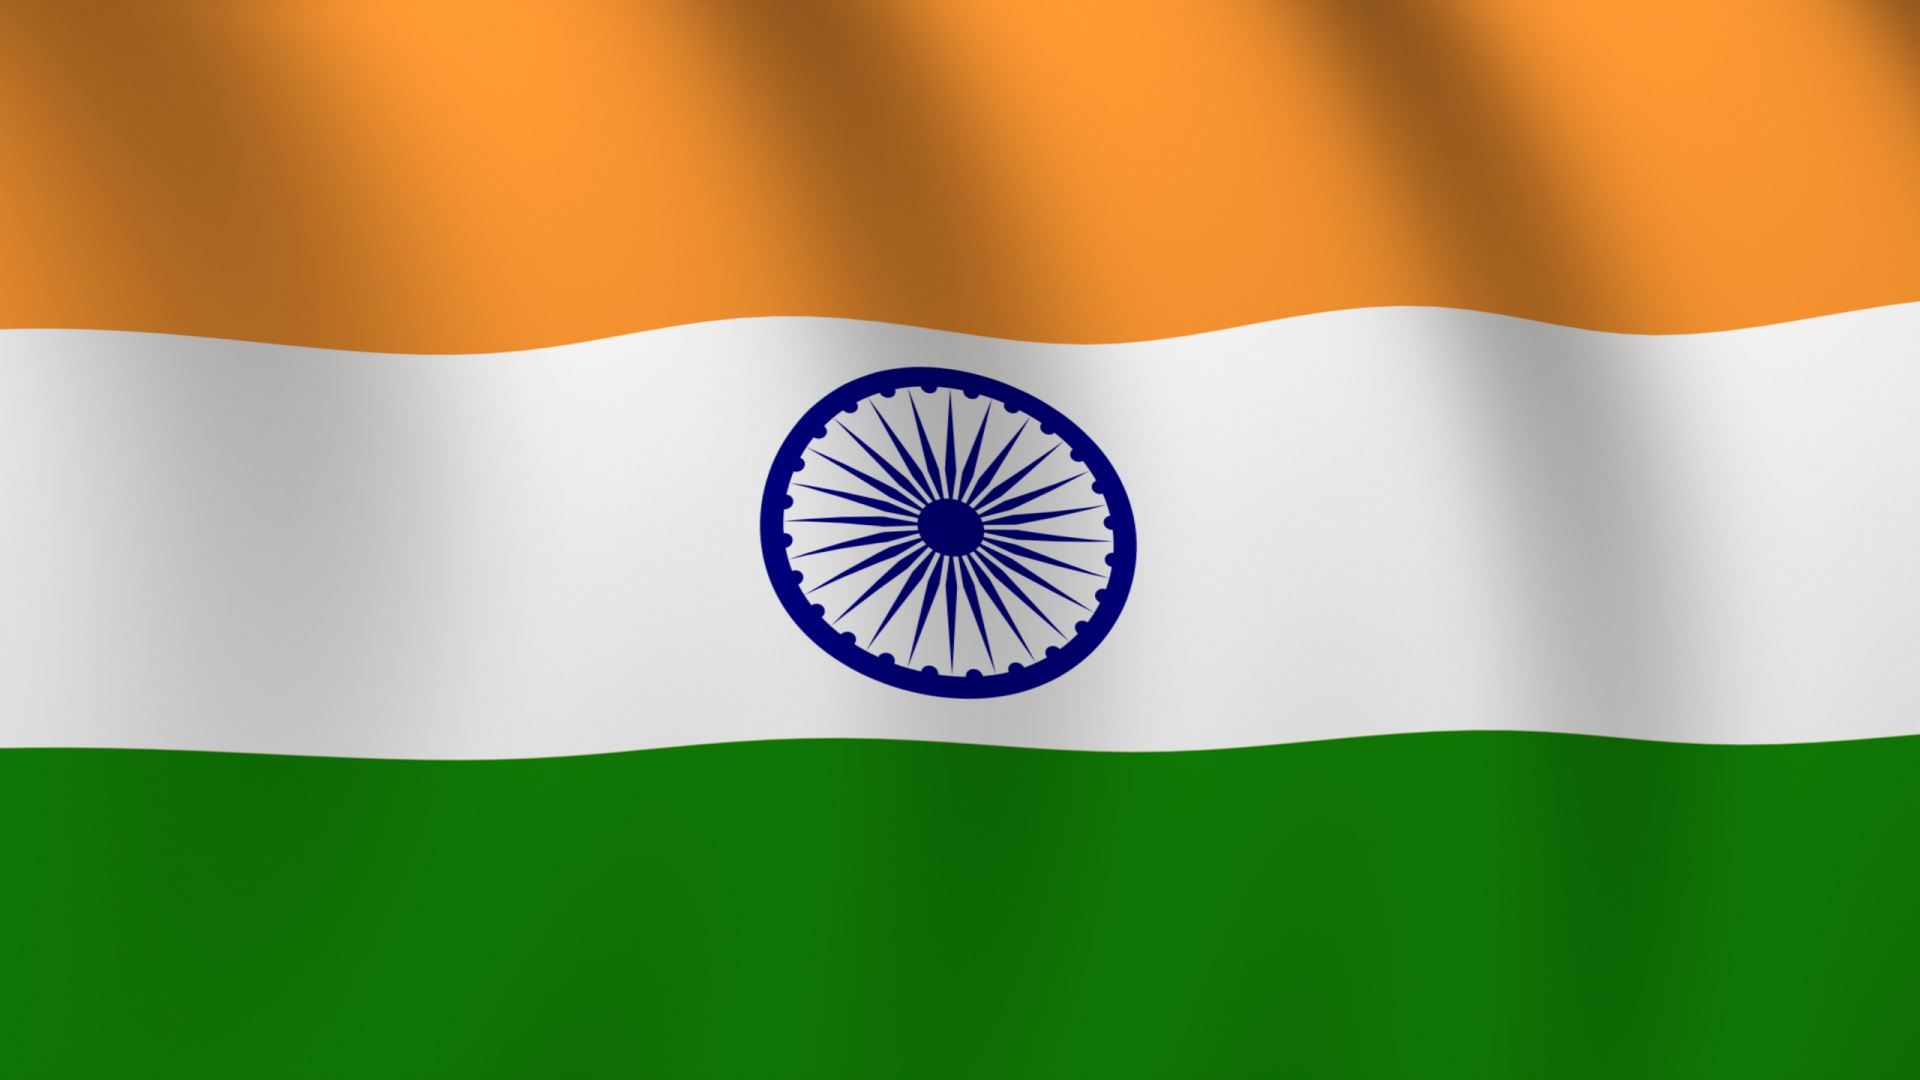 India flag wallpapers 1920x1080 1920x1080